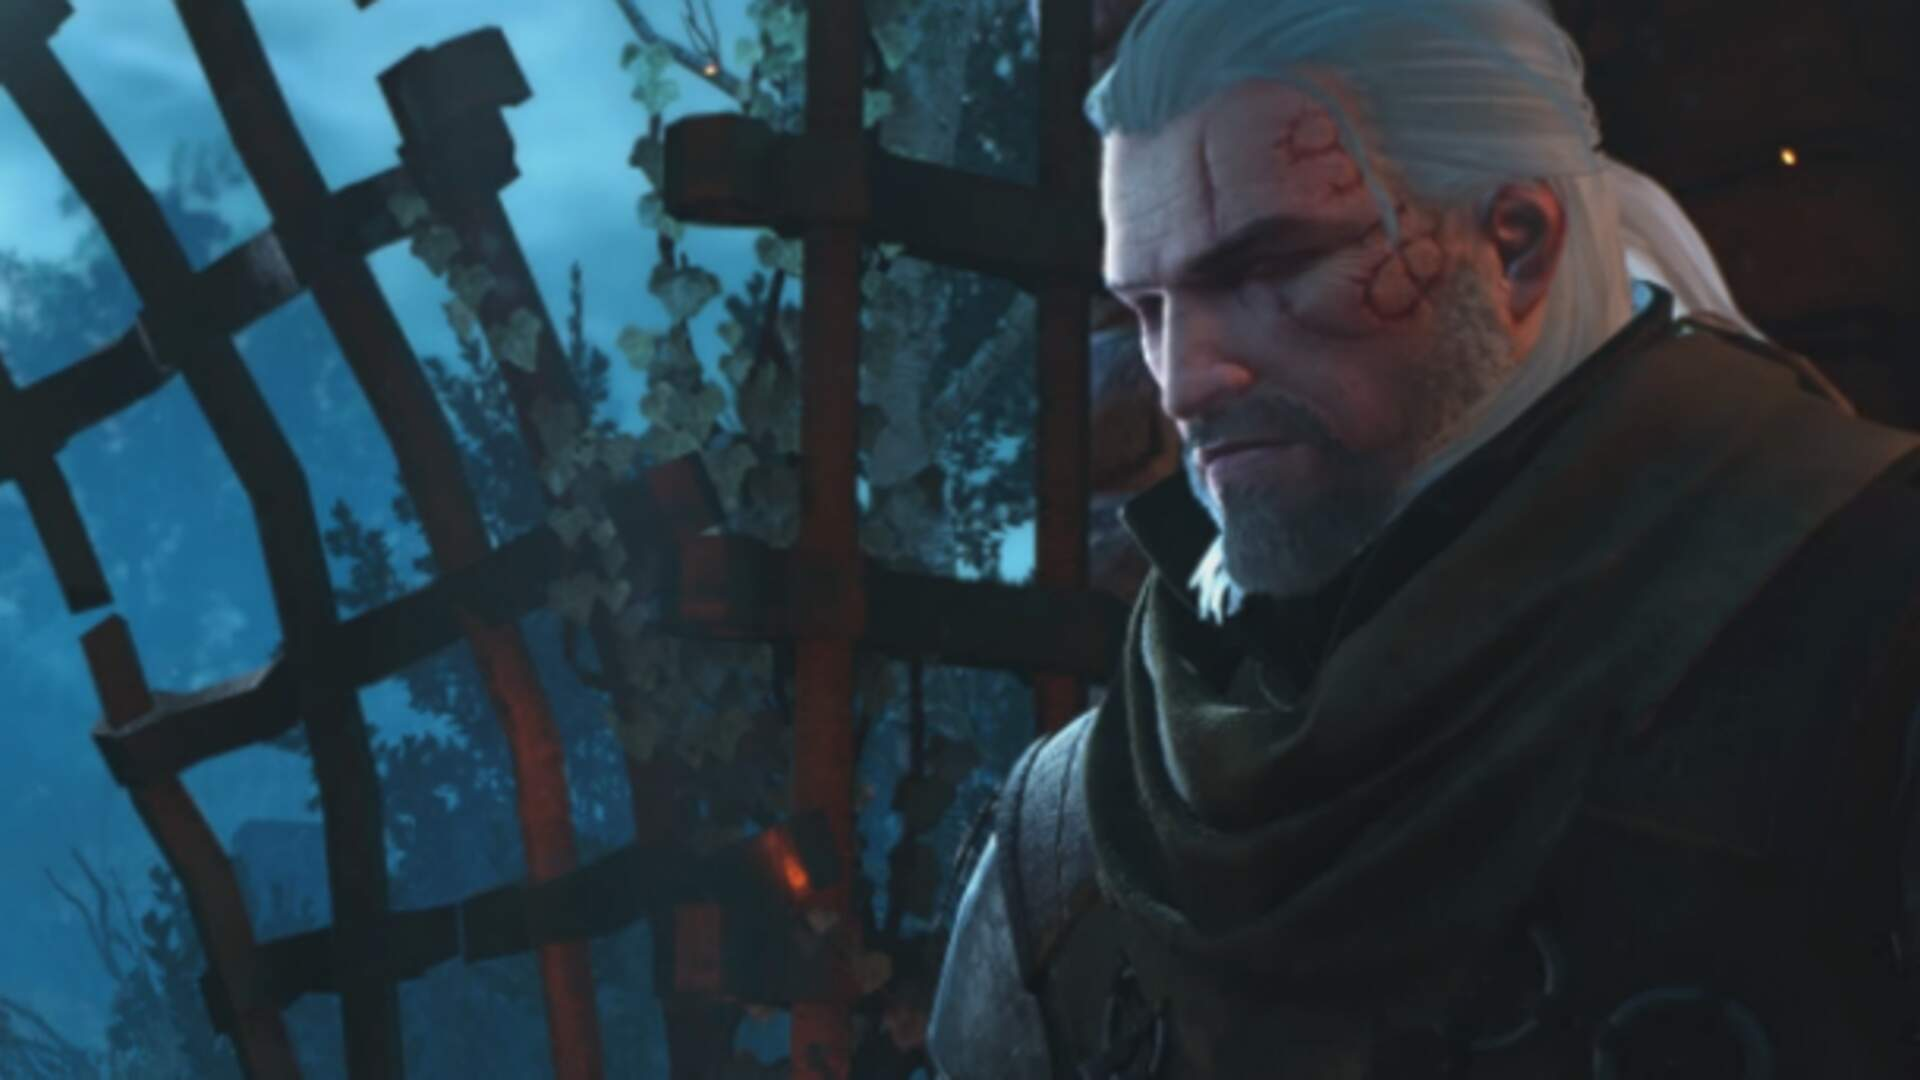 The Witcher 3 PS4 Pro Patch 1.61 May Have Broken the Game's Performance